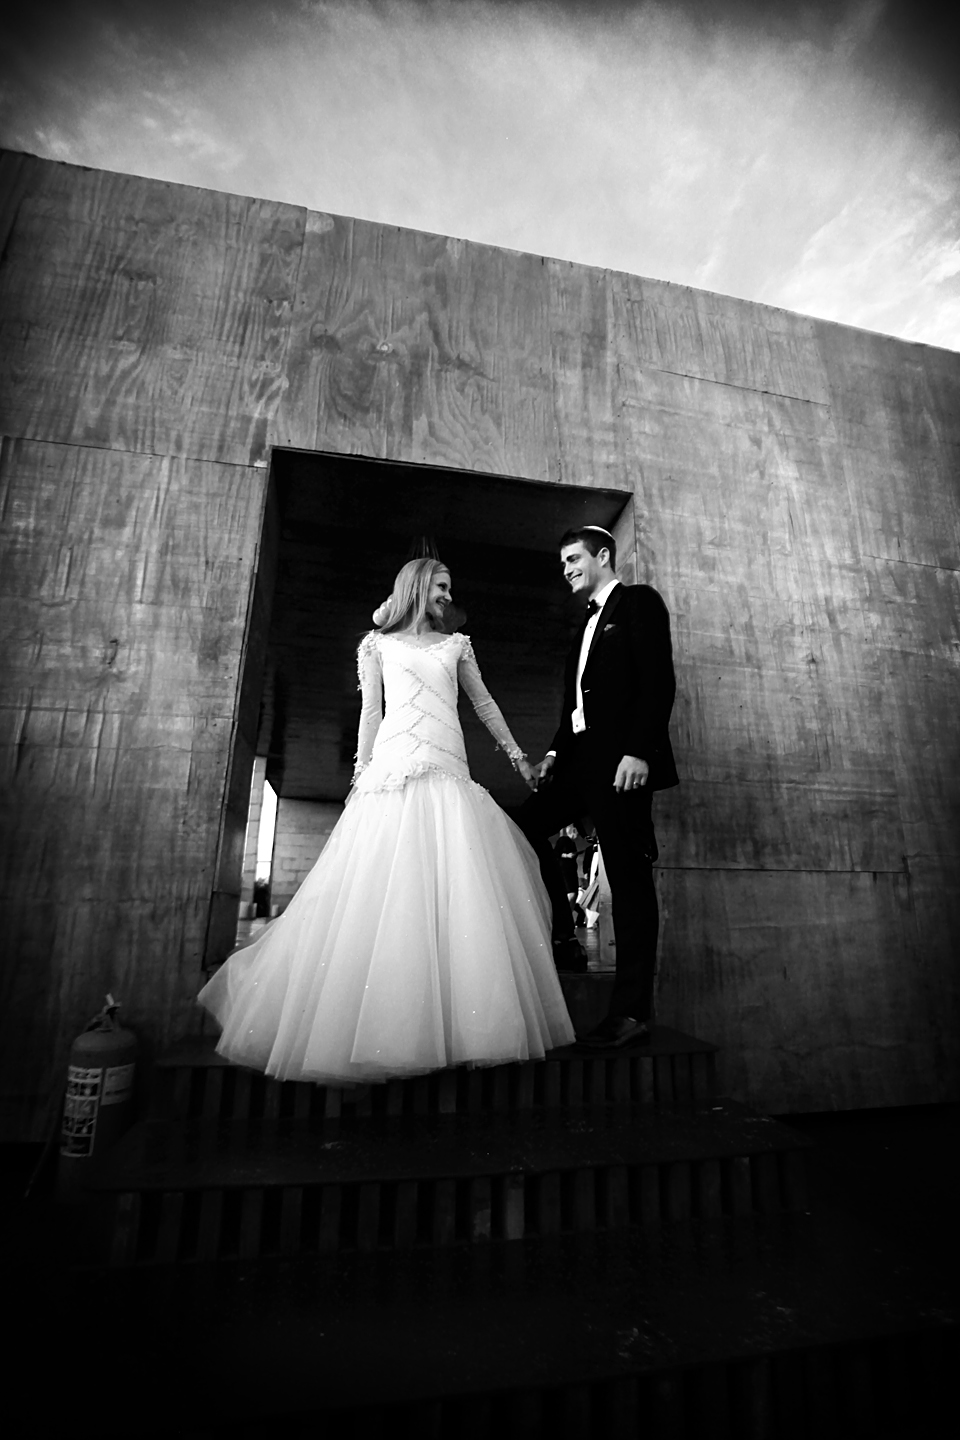 jewish-wedding-sandton-urban-tree-wedding-photographers-estilo-photography-best-wedding-photographers-johannesburg218.jpg